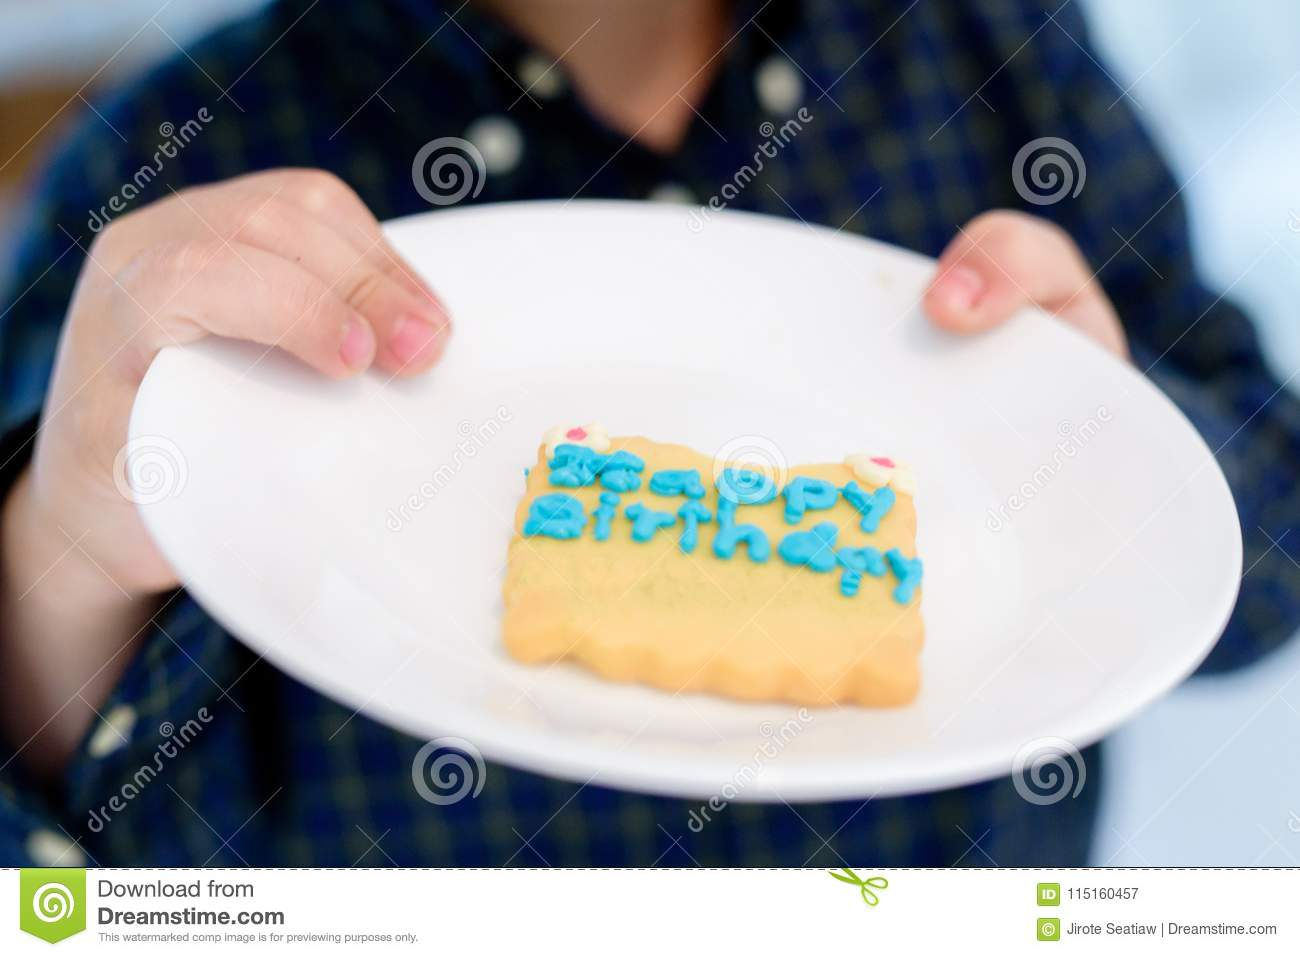 The Birthday Cake Child Hold Recipe On A Flat Plate For Kids Of All Ages Selective Focus